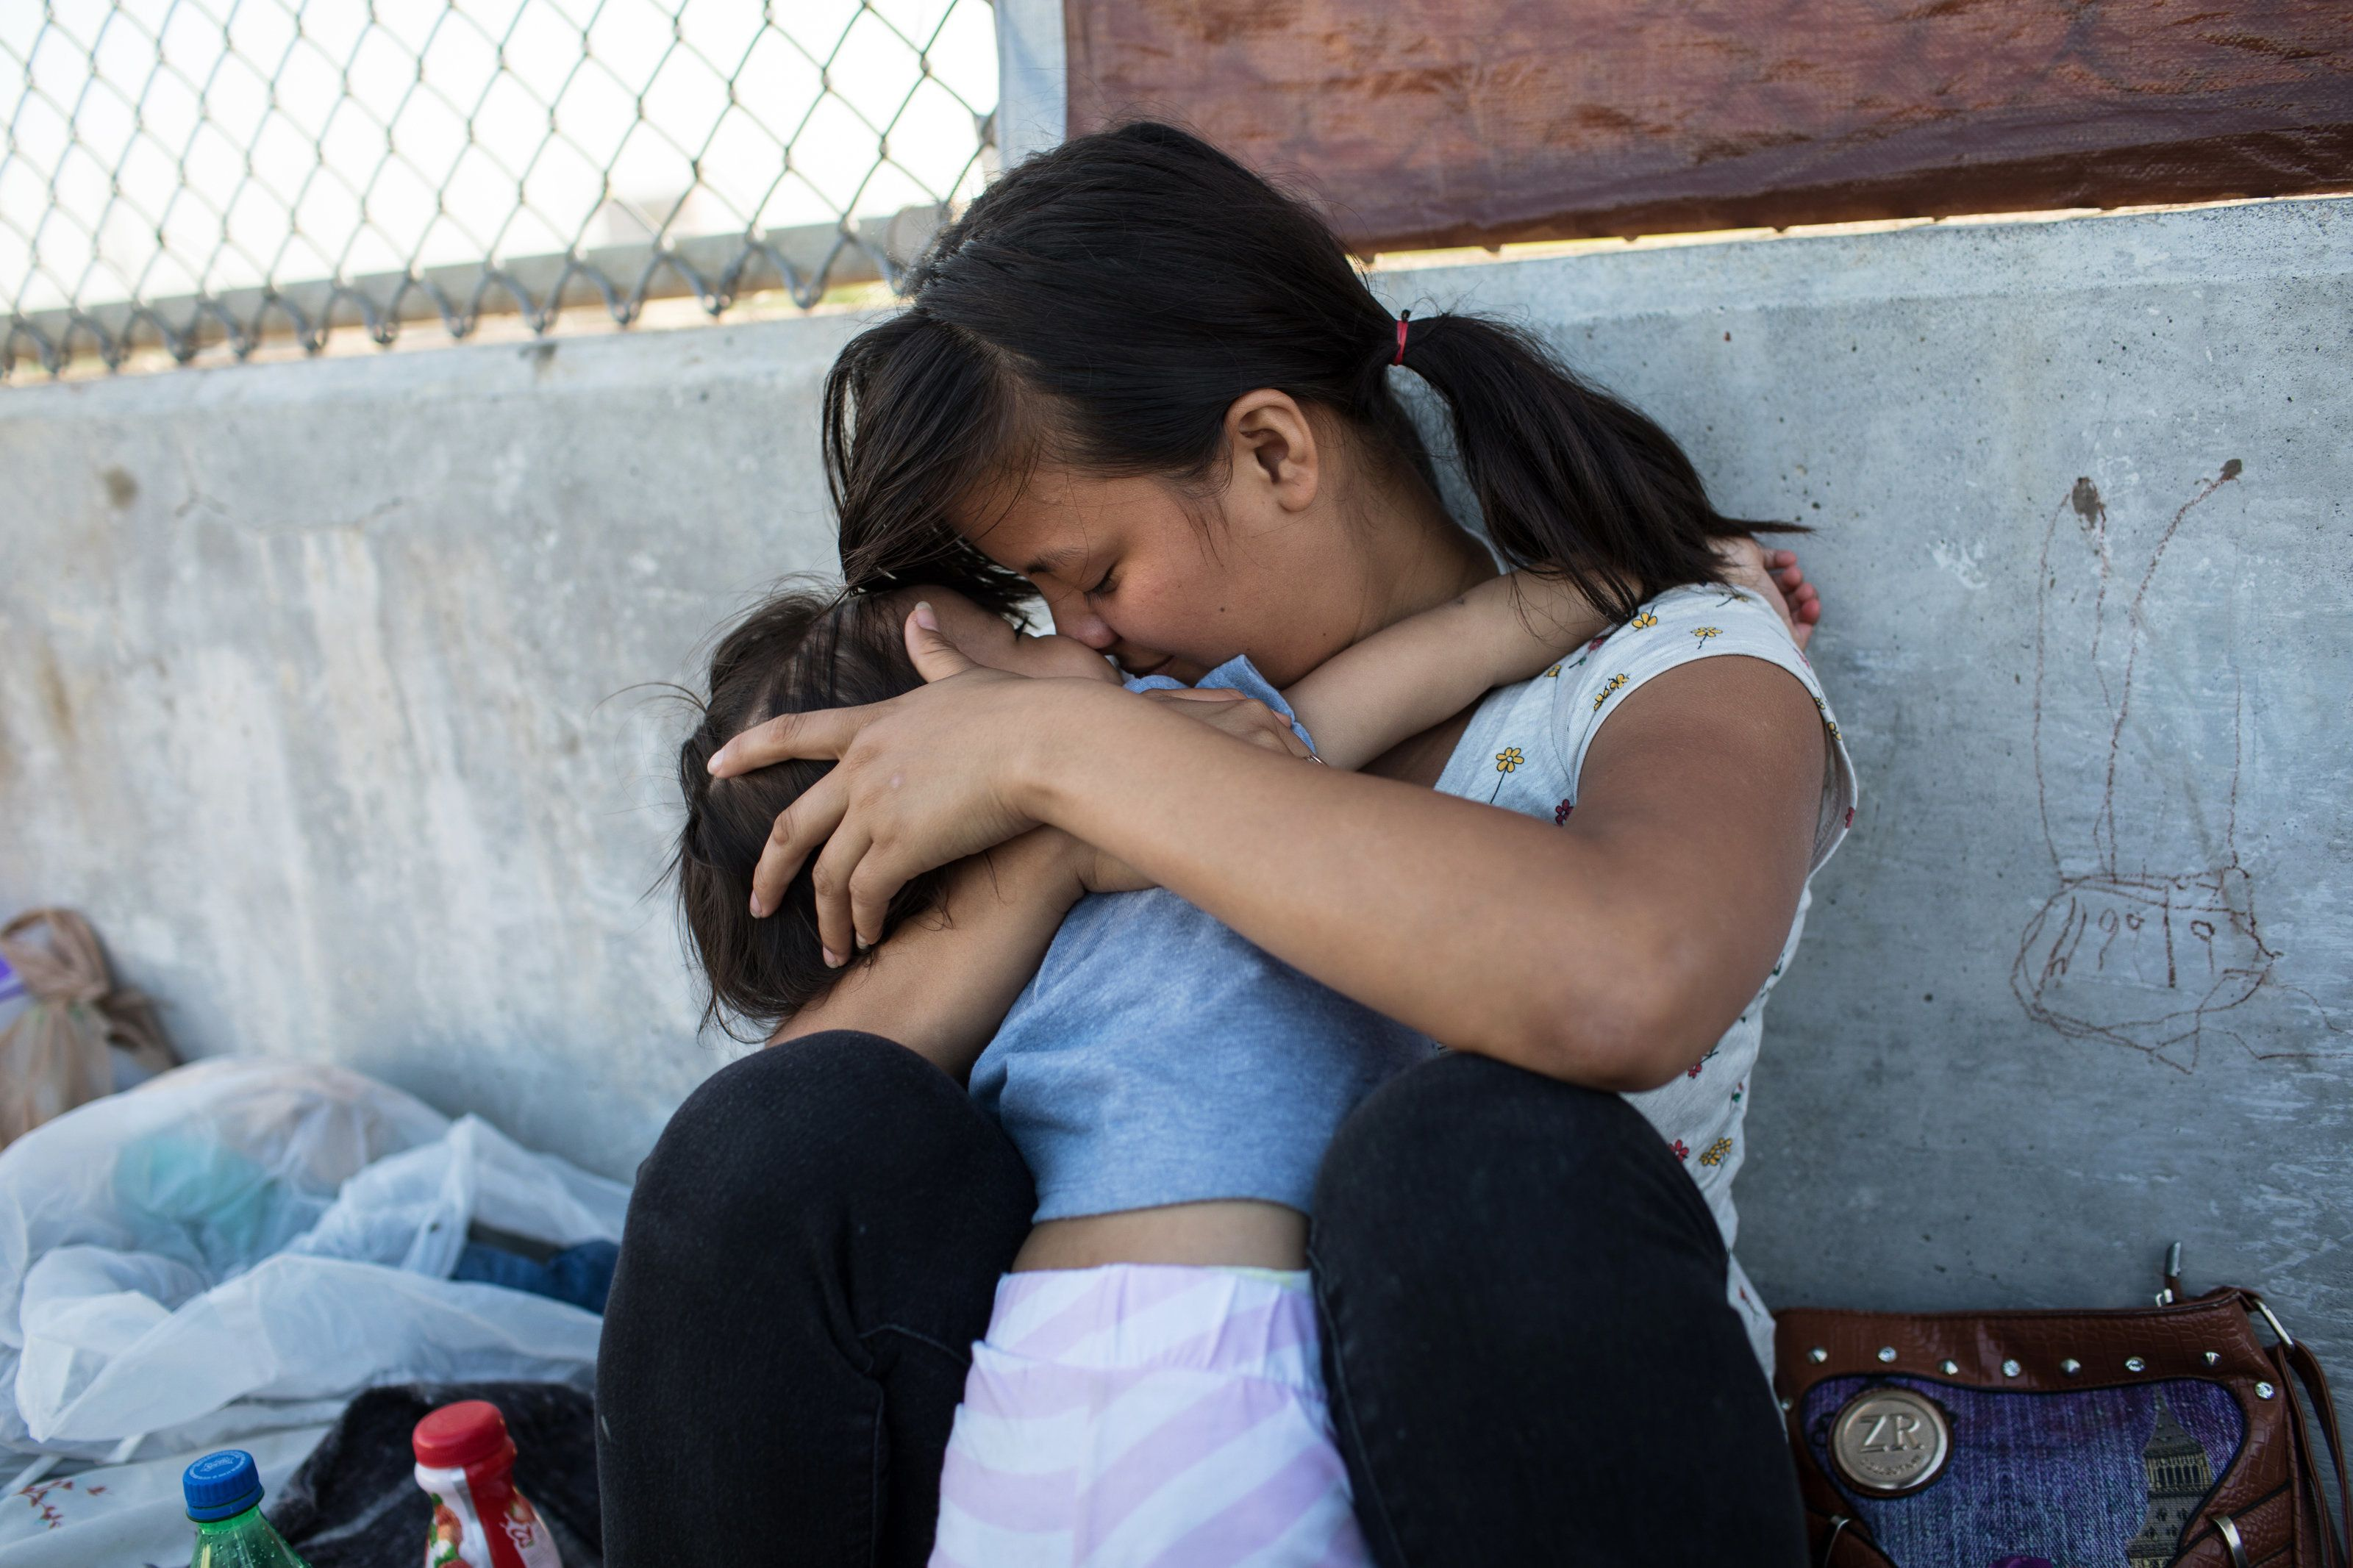 MATAMOROS, MX - JUNE 28: A Honduran woman embraces her 2-year-old daughter as they wait on the Mexican side of the Brownsvill